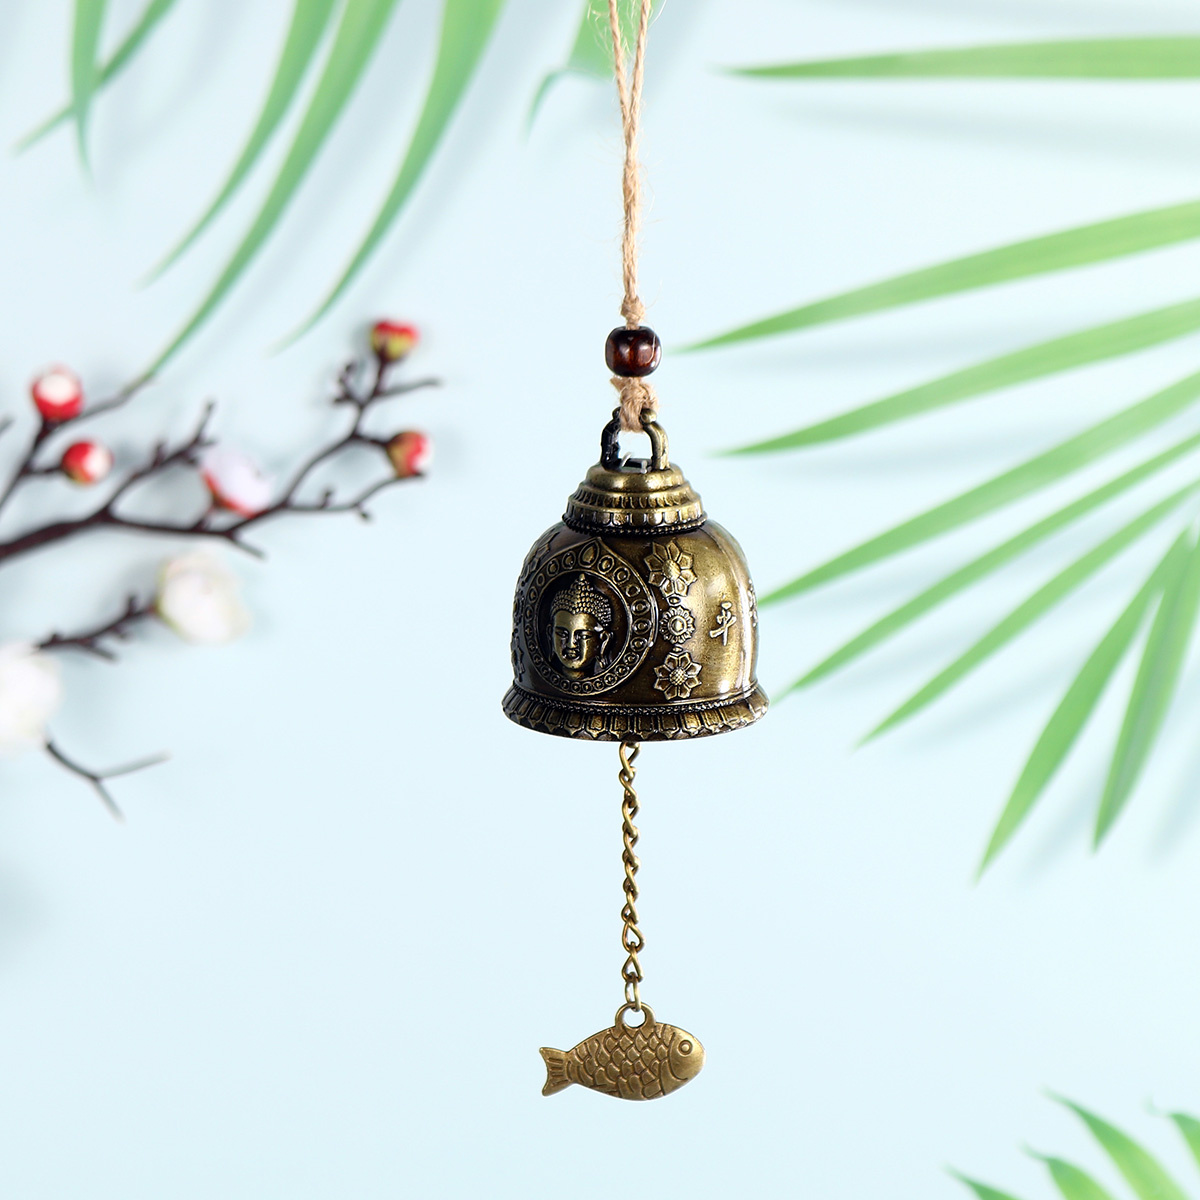 Chinese Wind Chime Buddha Single Bell Lucky Feng Shui Hanging Garden Decor:  Buy Online at Best Prices in Bangladesh   Daraz.com.bd